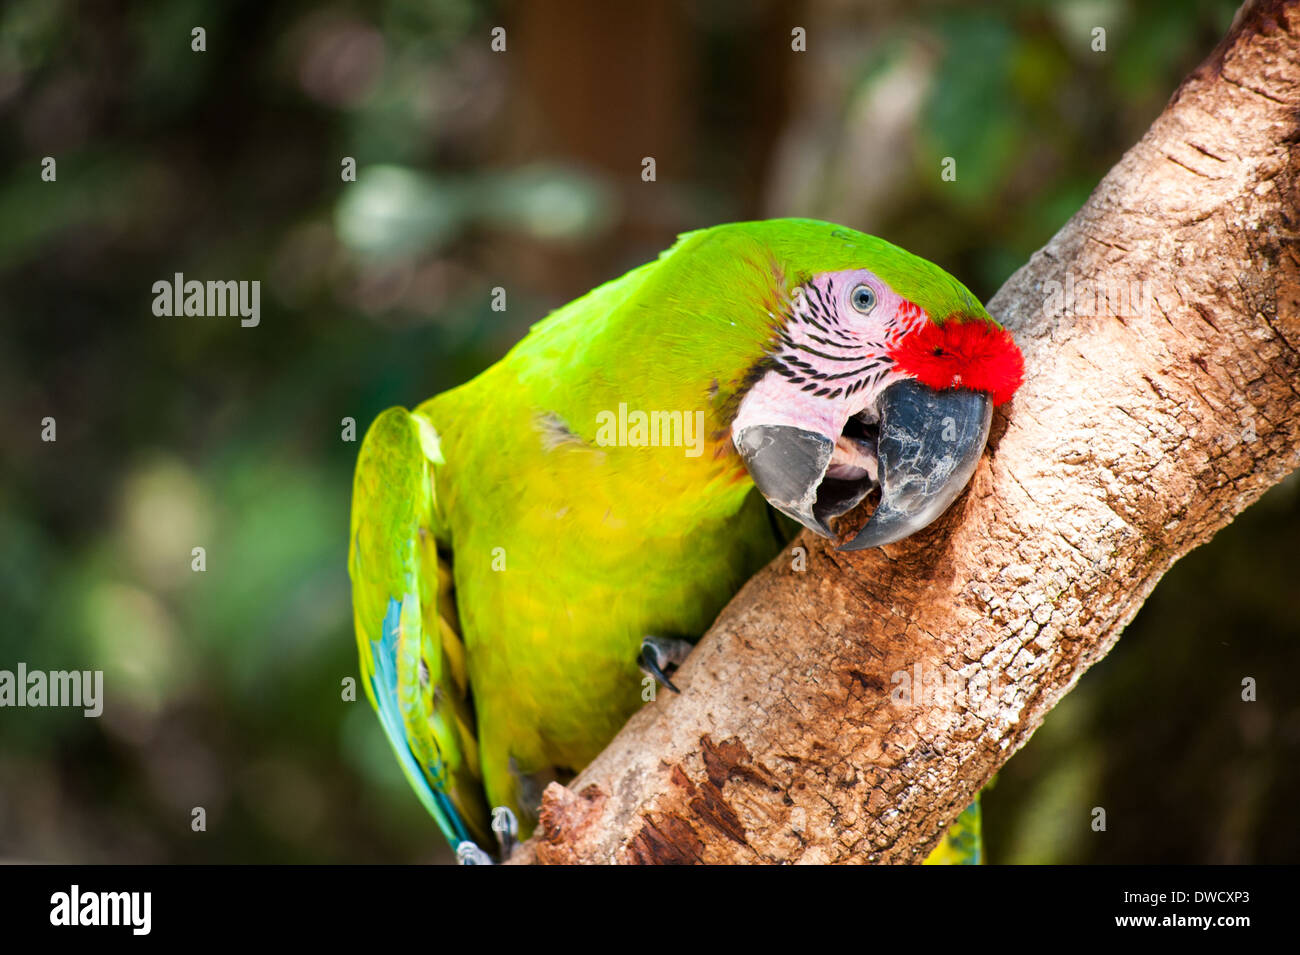 A Great Green Macaw in Honduras - Stock Image